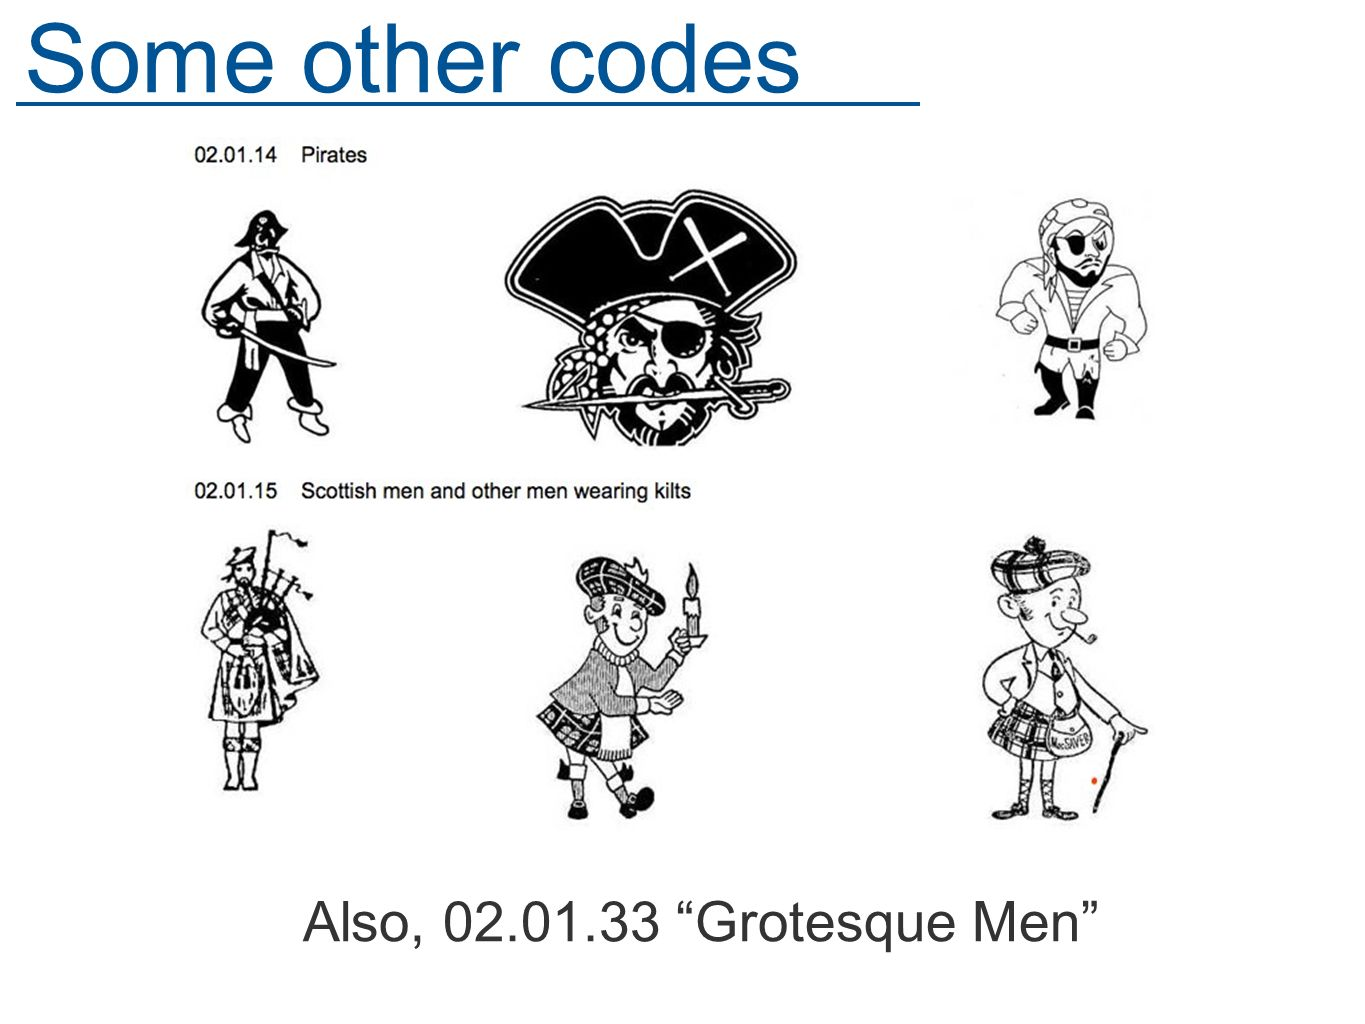 Also, Grotesque Men Some other codes